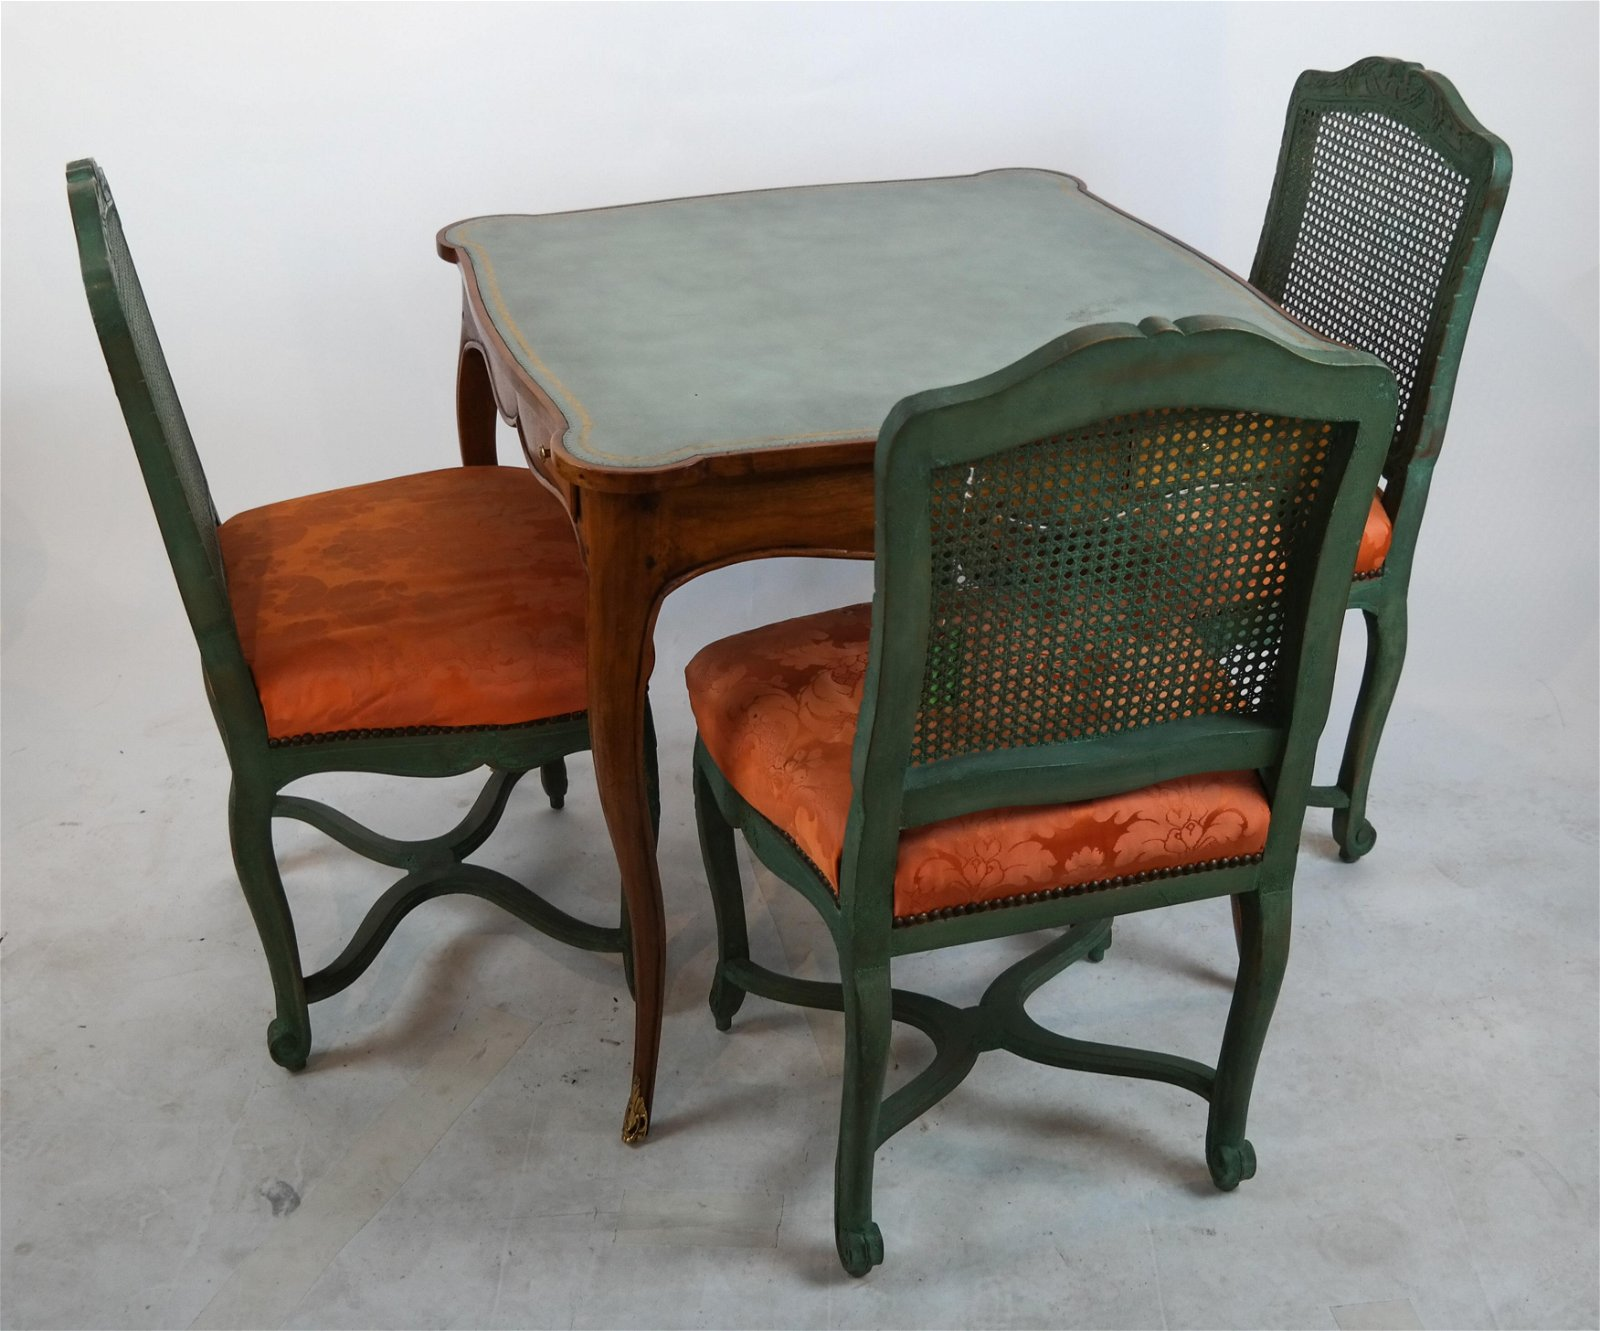 3 Yale Burge Chairs and a Game Table